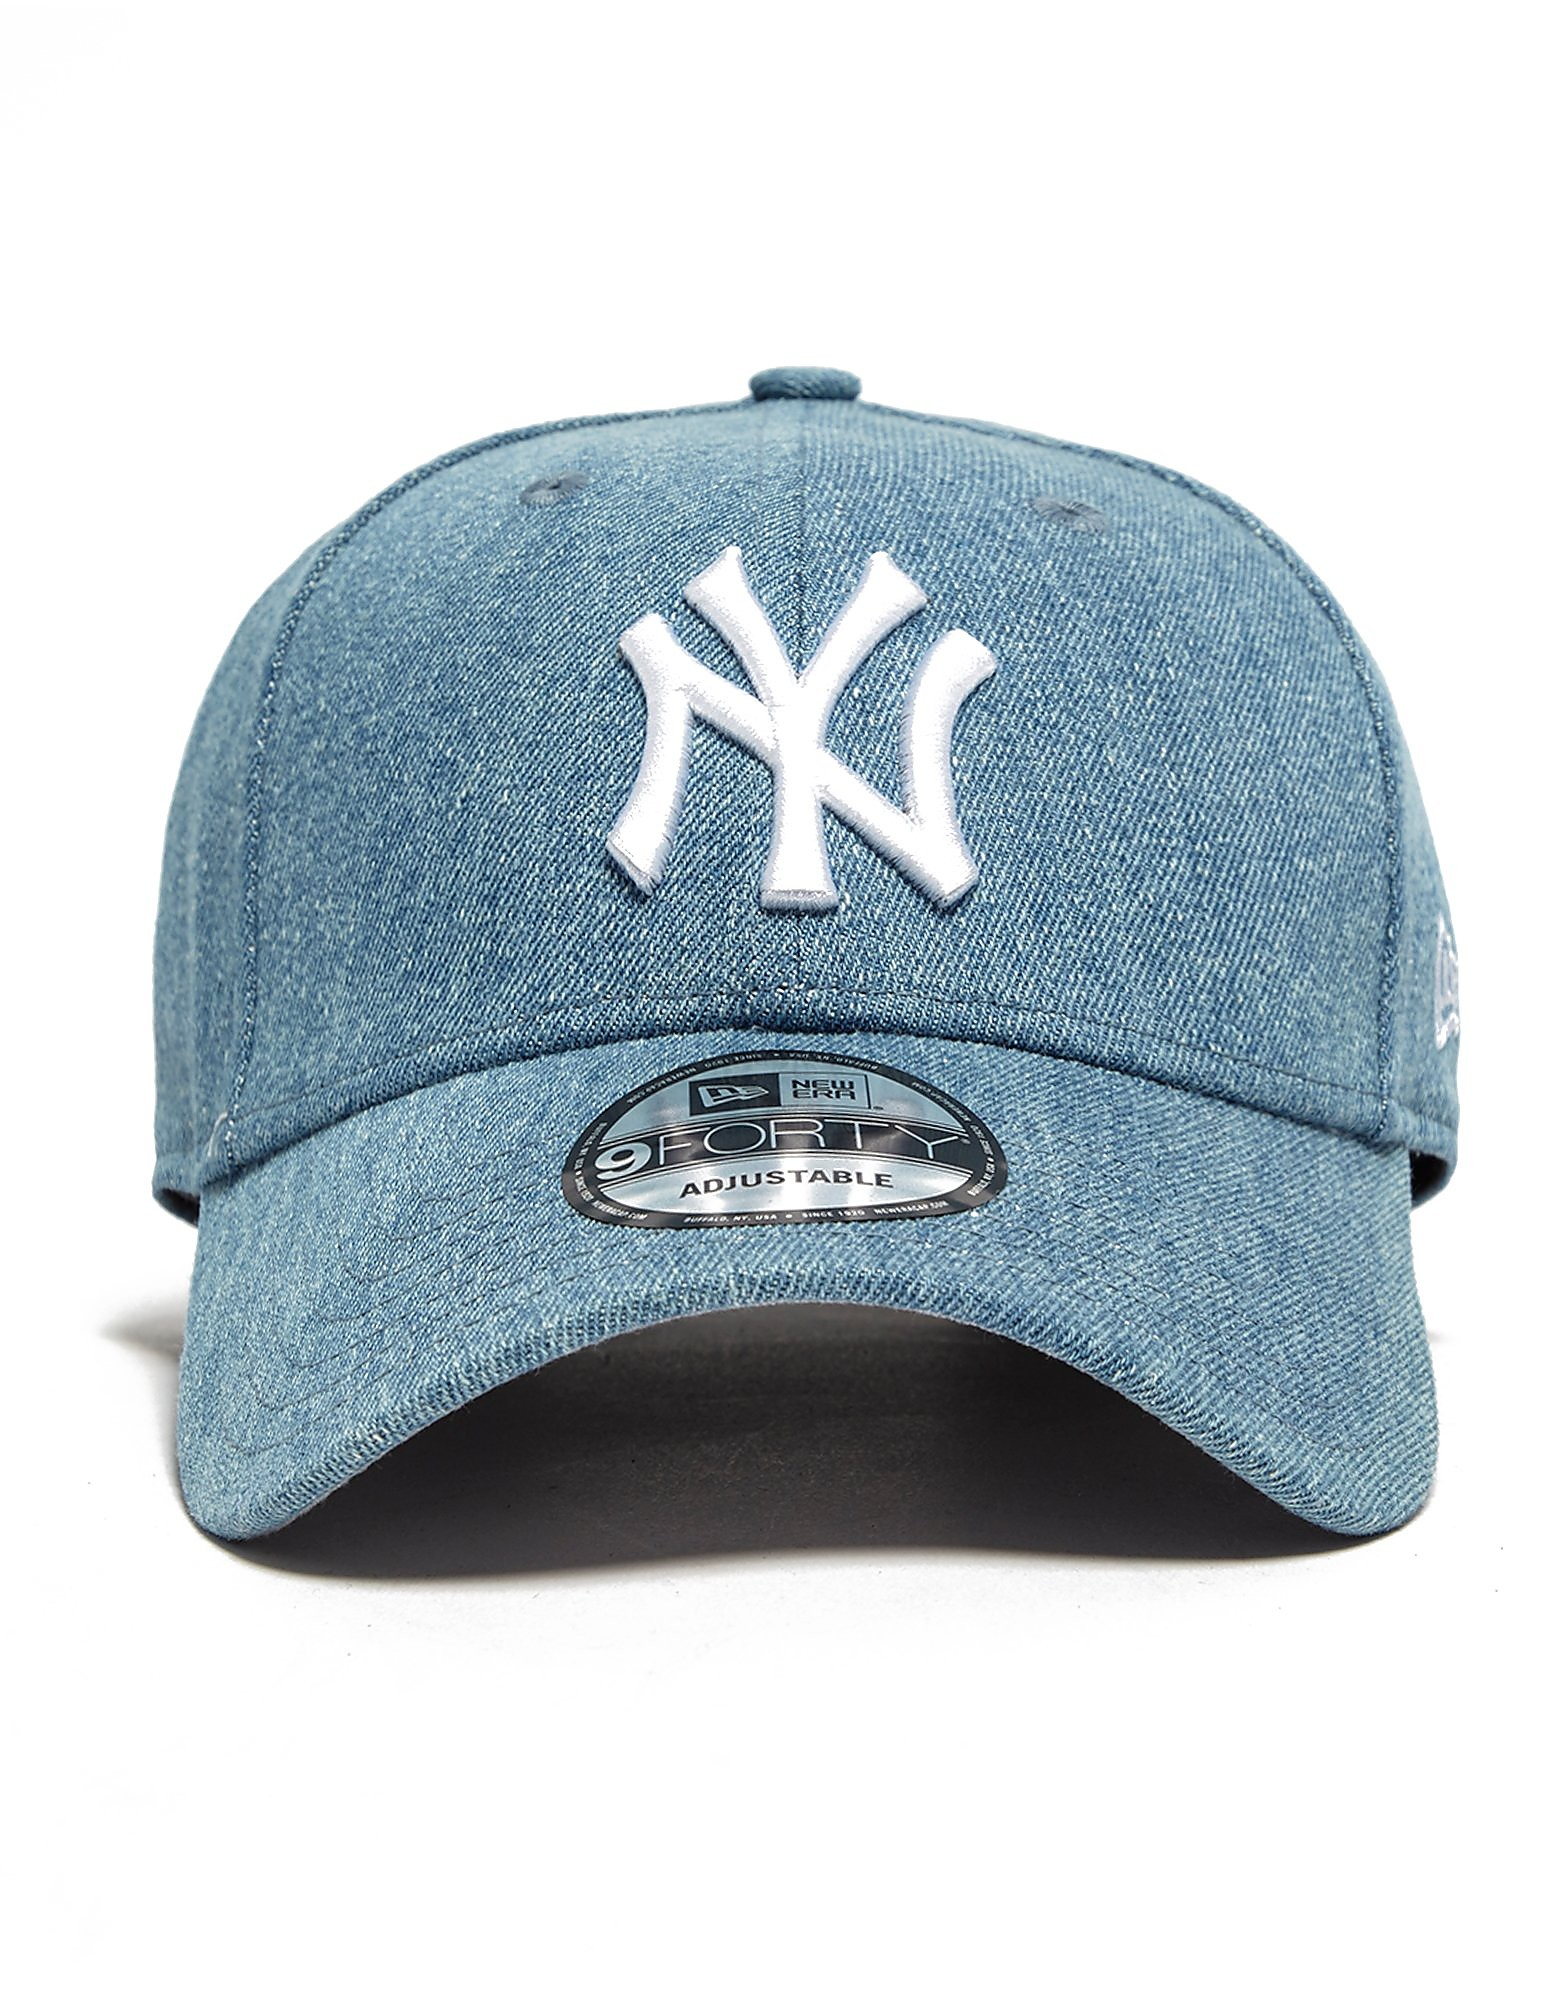 New Era Cappellino con cinturino posteriore MLB New York Yankees 9FORTY